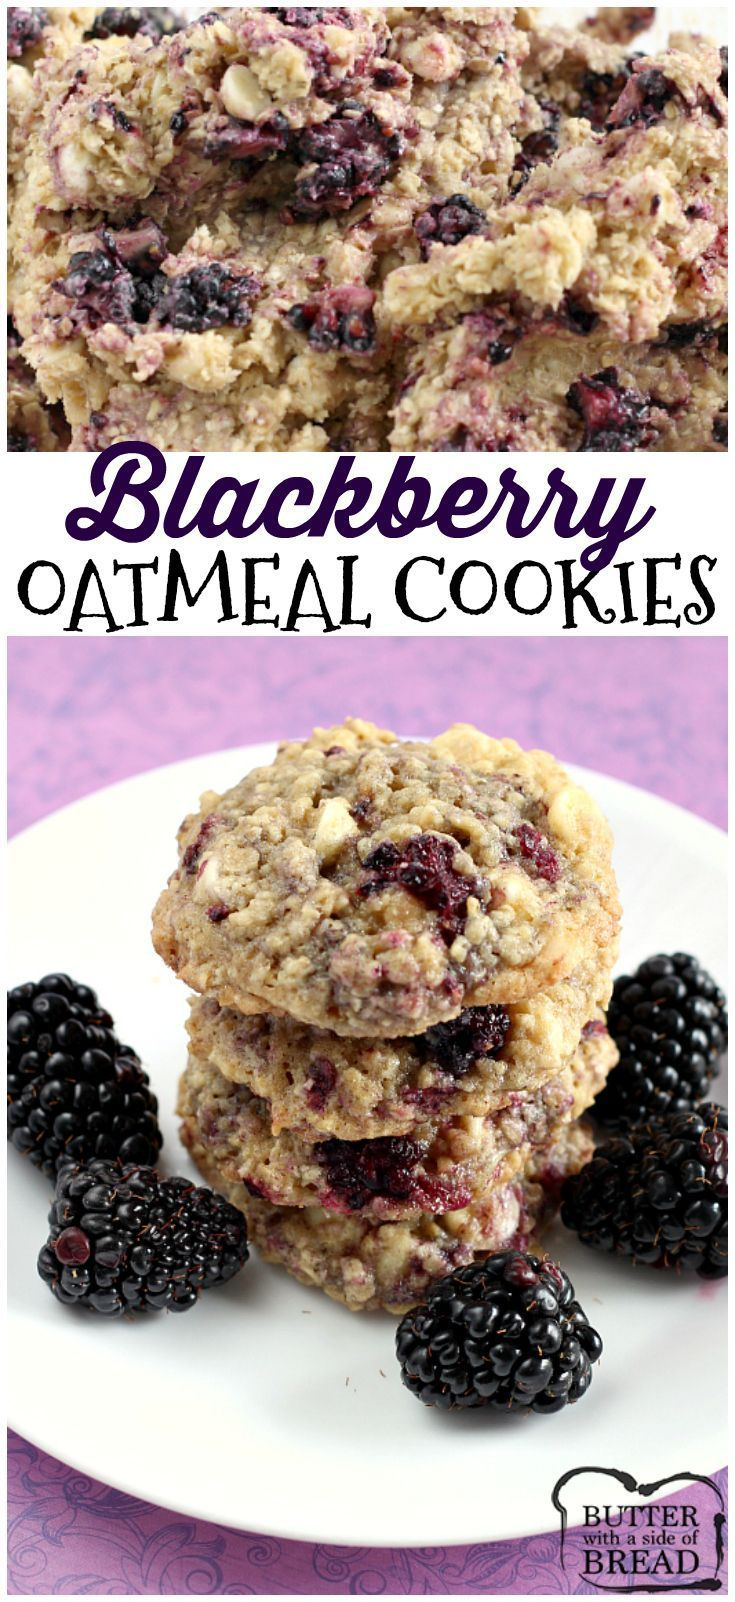 These Blackberry Oatmeal Cookies are absolutely amazing! The cookies are soft and chewy and the fresh blackberries add the most delicious flavor! Easy cookie recipe from Butter With A Side of Bread via /ButterGirls/